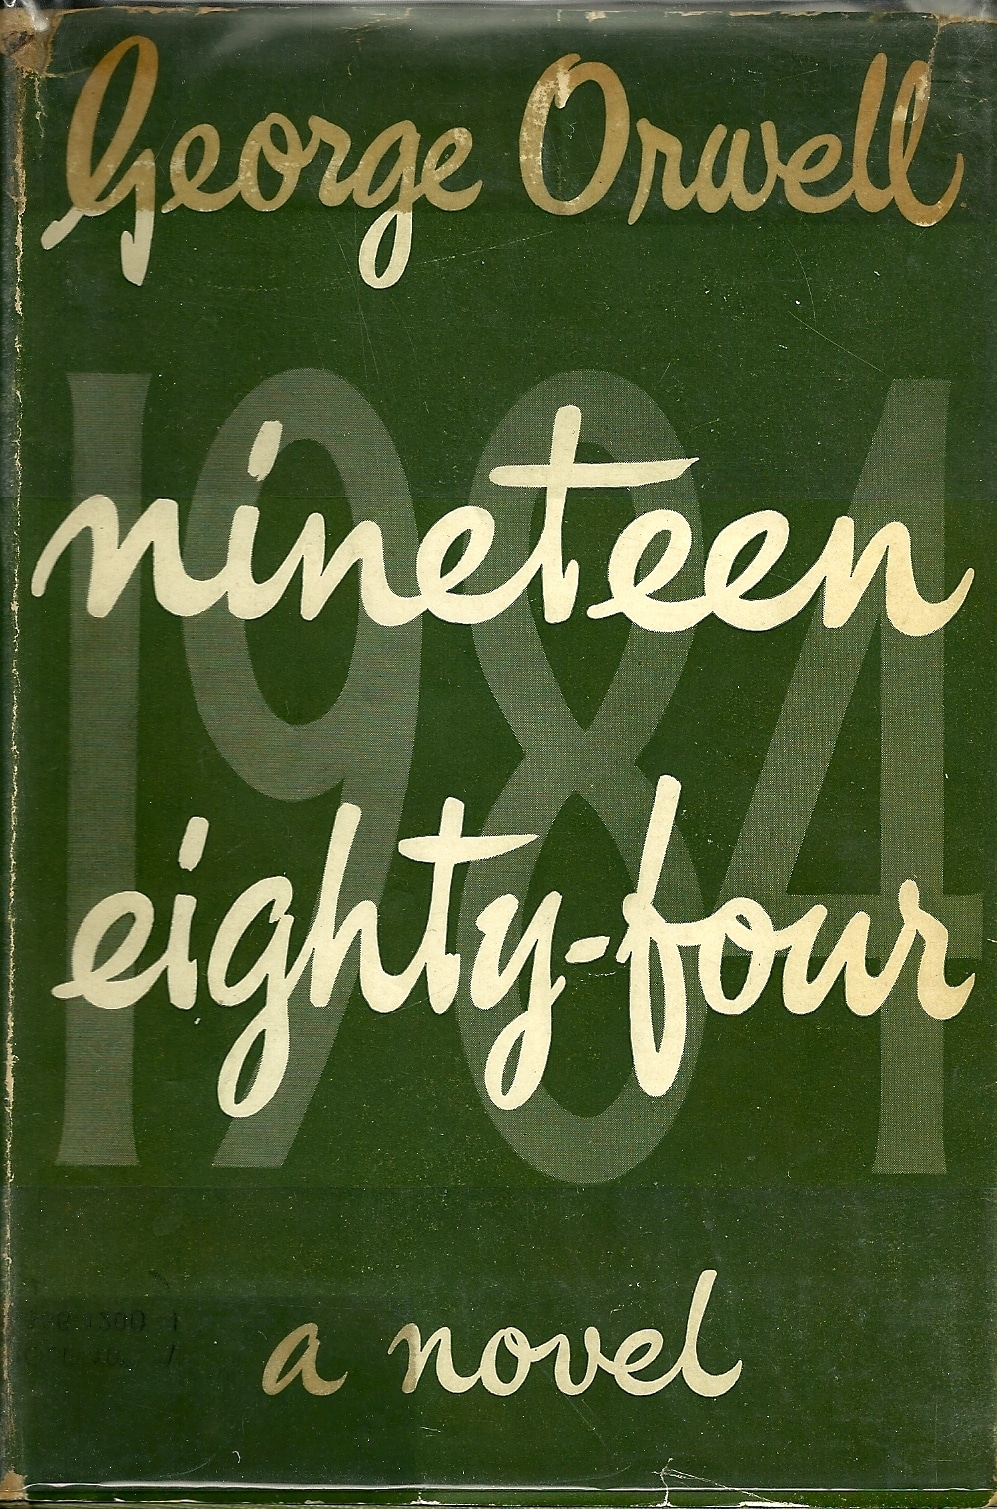 1984 by George Orwell, book cover.